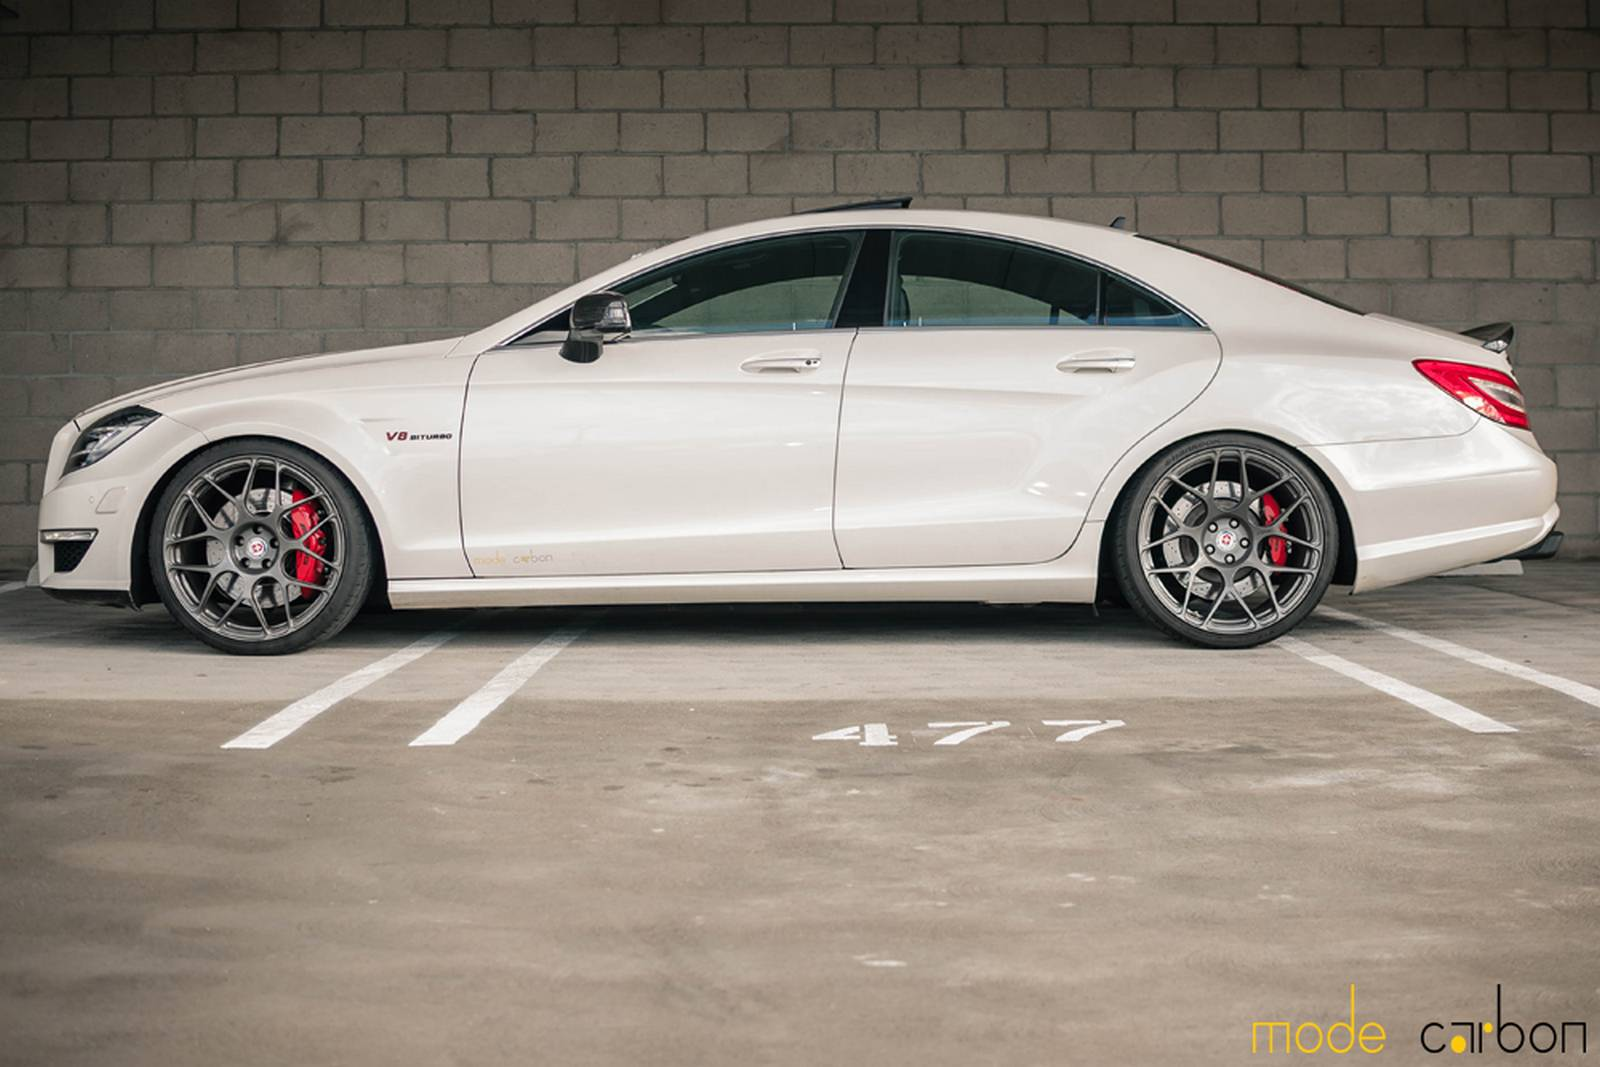 Mode carbon mercedes benz cls 63 amg gtspirit for Mercedes benz amg cls